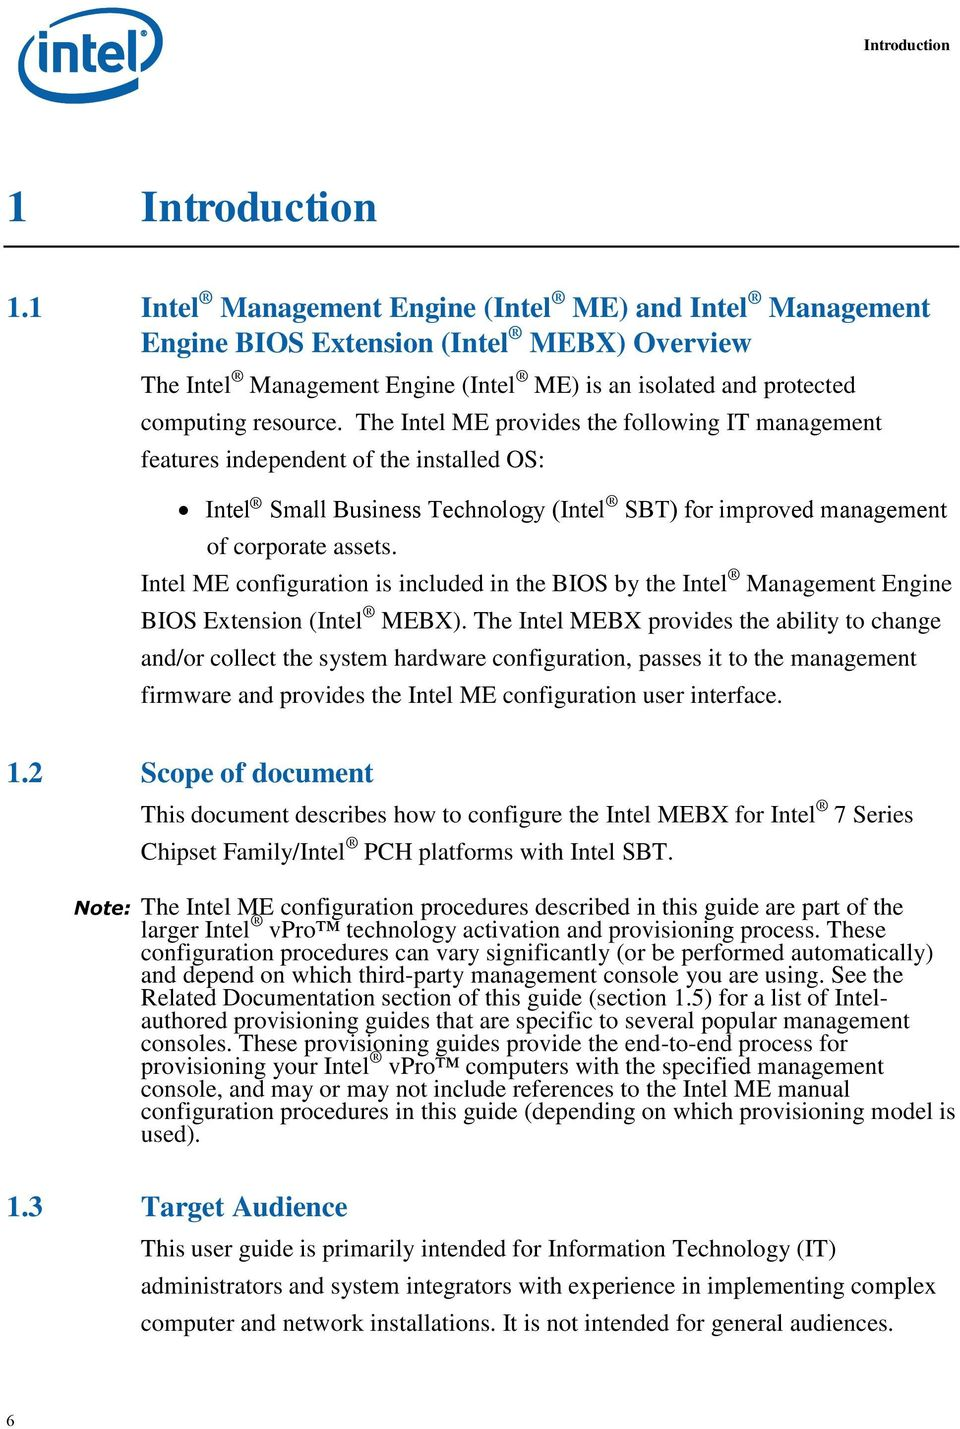 The Intel ME provides the following IT management features independent of the installed OS: Intel Small Business Technology (Intel SBT) for improved management of corporate assets.